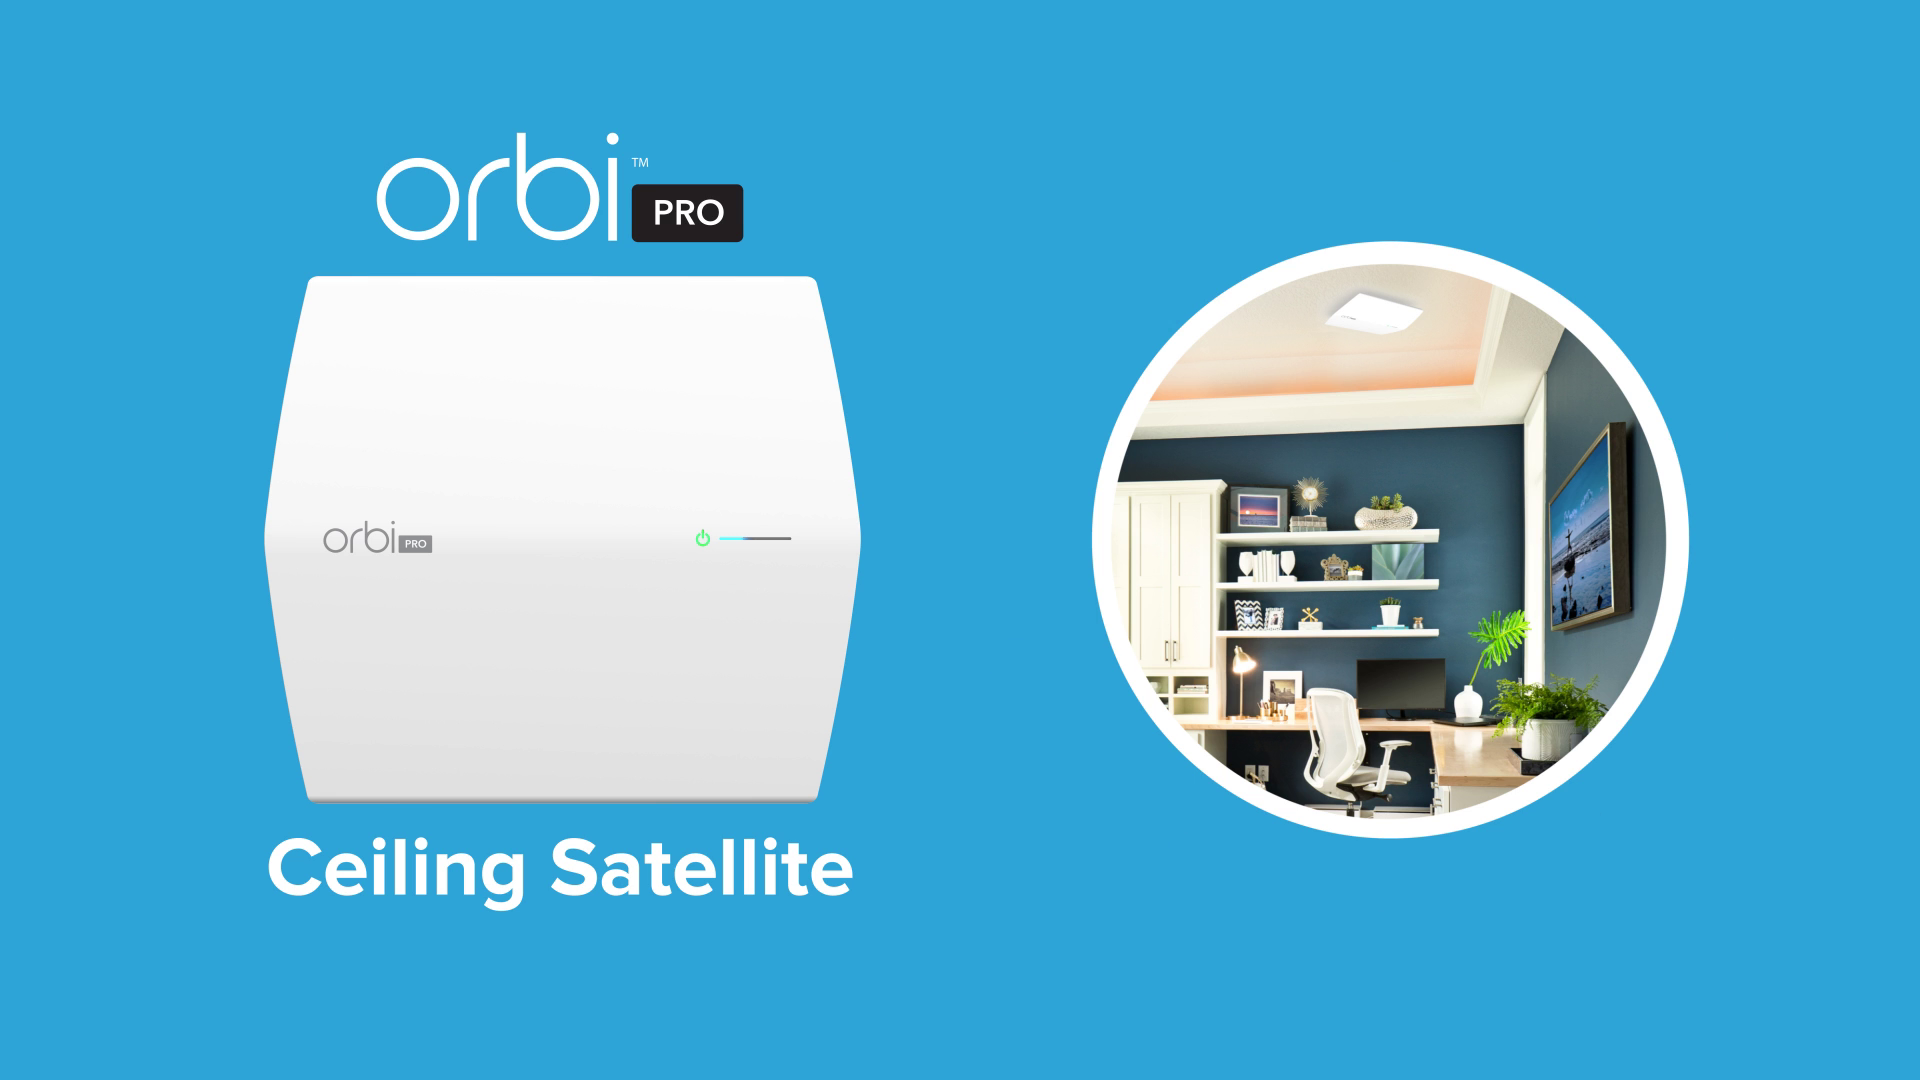 Netgear SRC60 Add-on Orbi Pro Ceiling Satellite